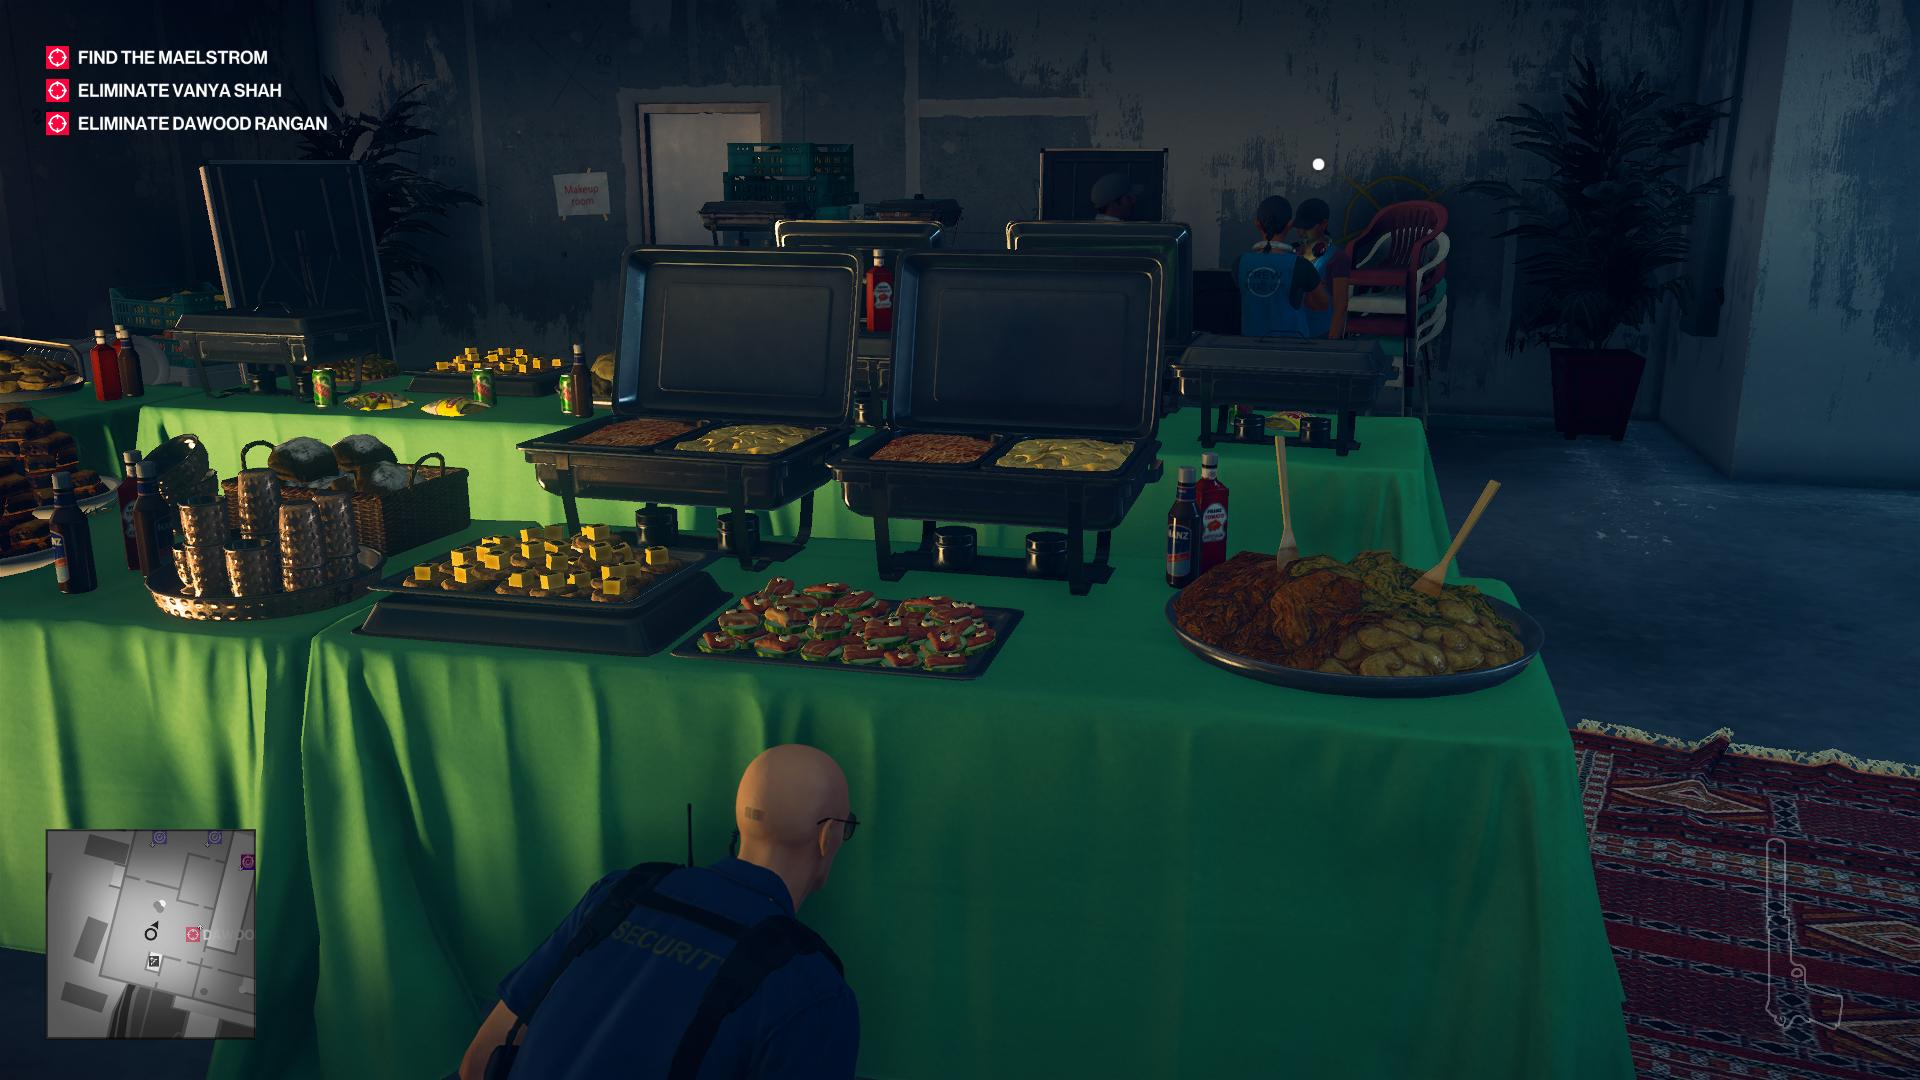 Agent 47 sneaking around as a security guard, behind a buffet table filled with Indian cuisine.